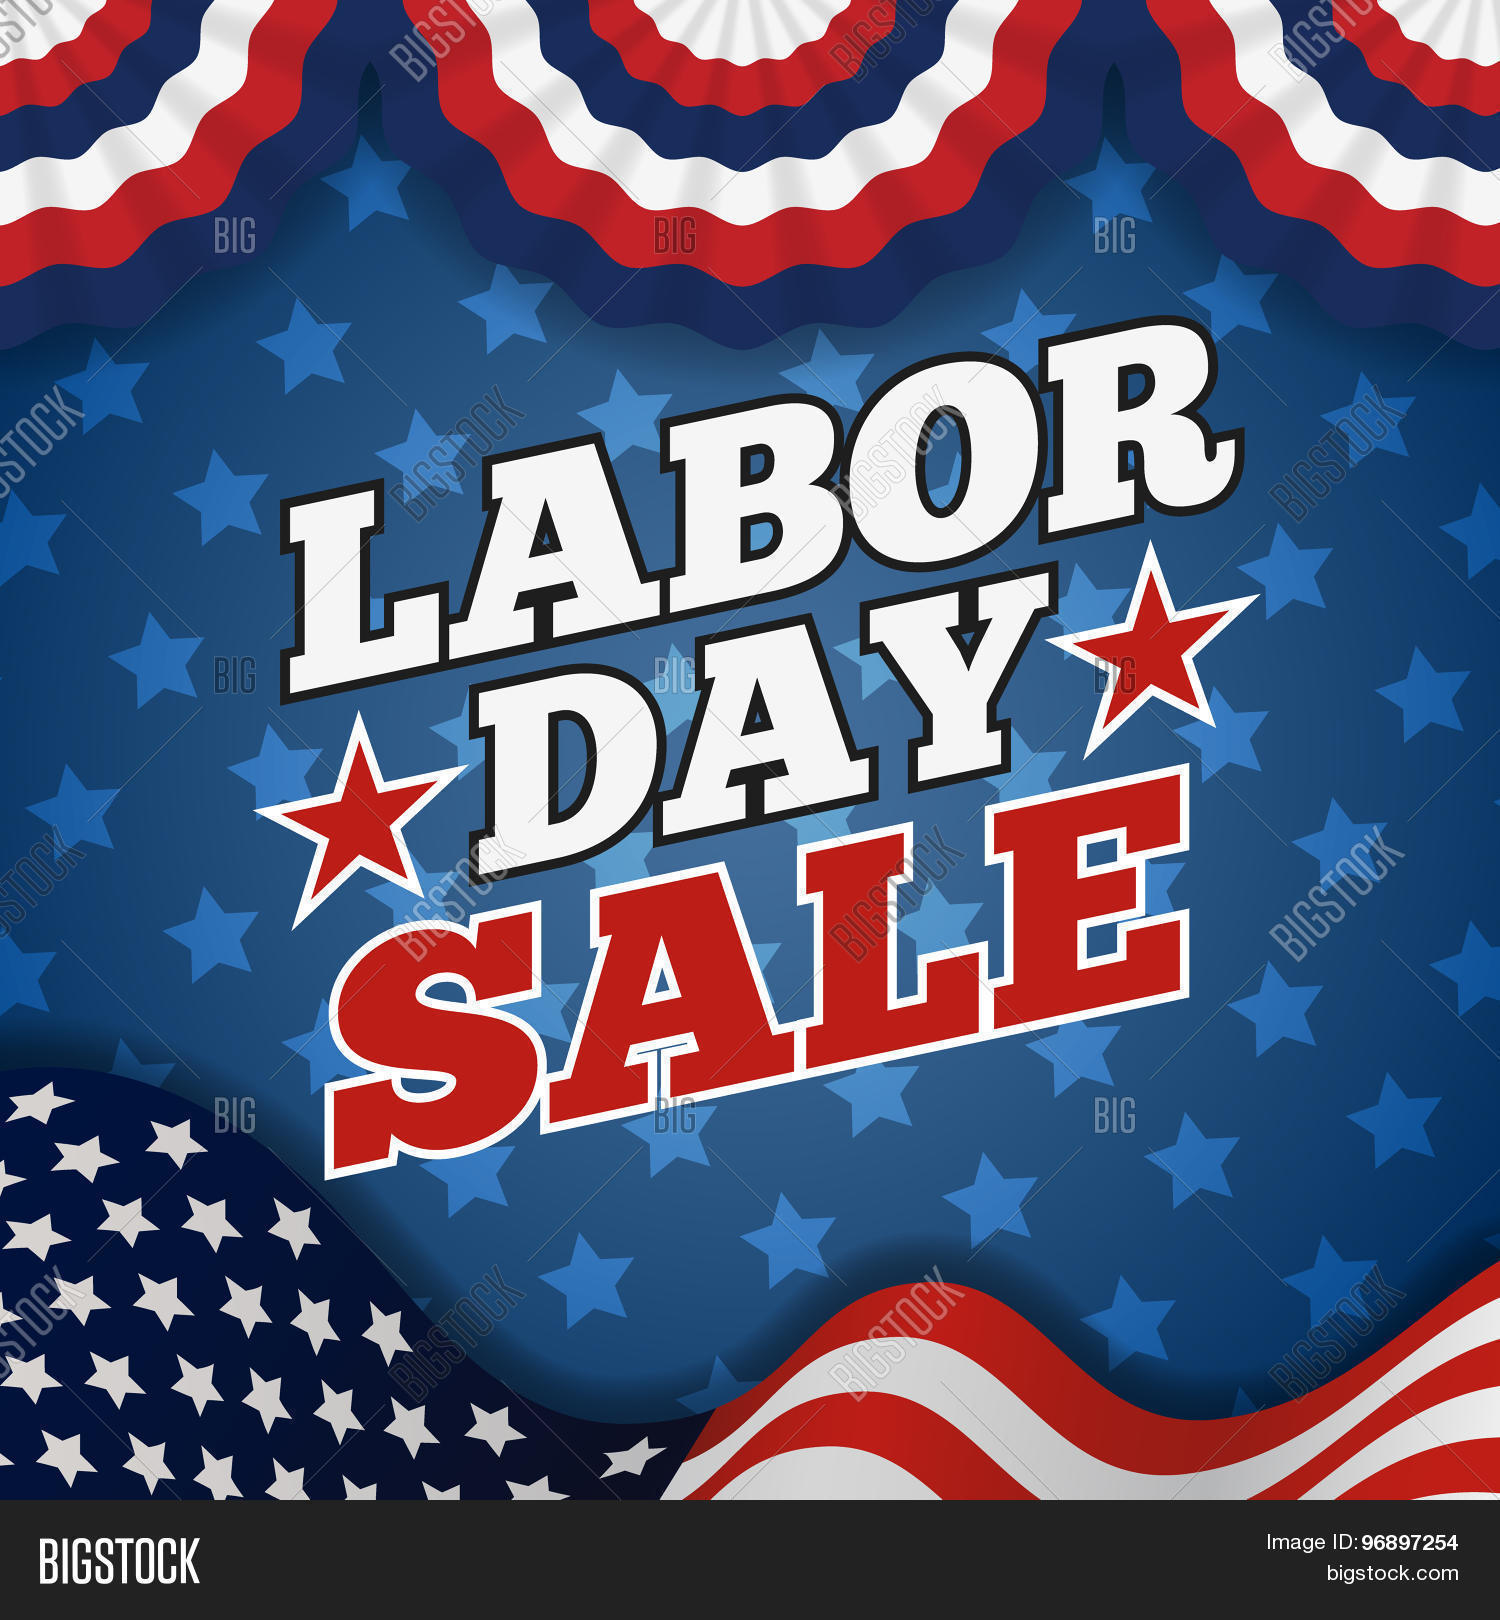 BIG 5 Sporting Goods, Pre Labor Day Sale & Clearance.